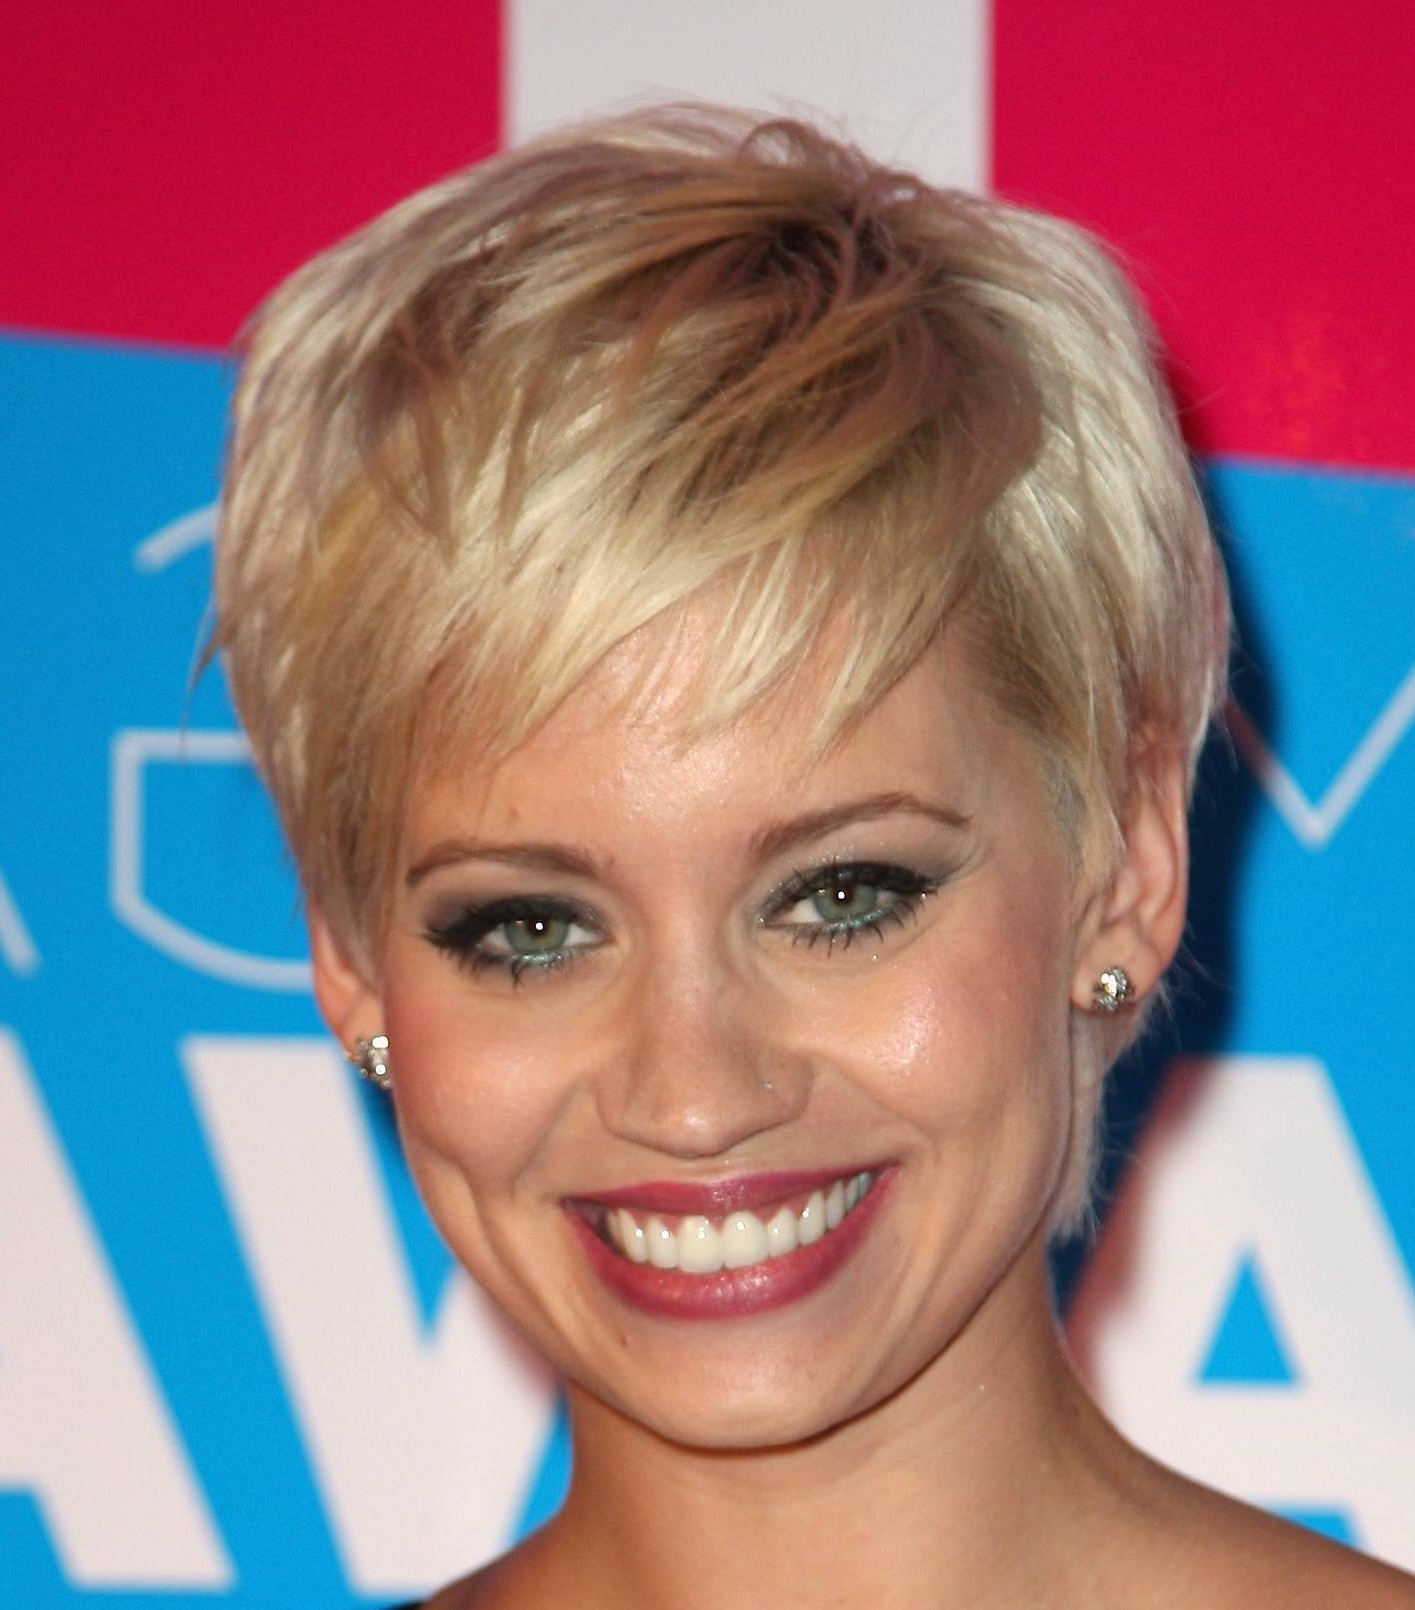 Short Hairstyles Chubby Faces – Hairstyle For Women & Man Inside Short Haircuts For Chubby Face (View 24 of 25)